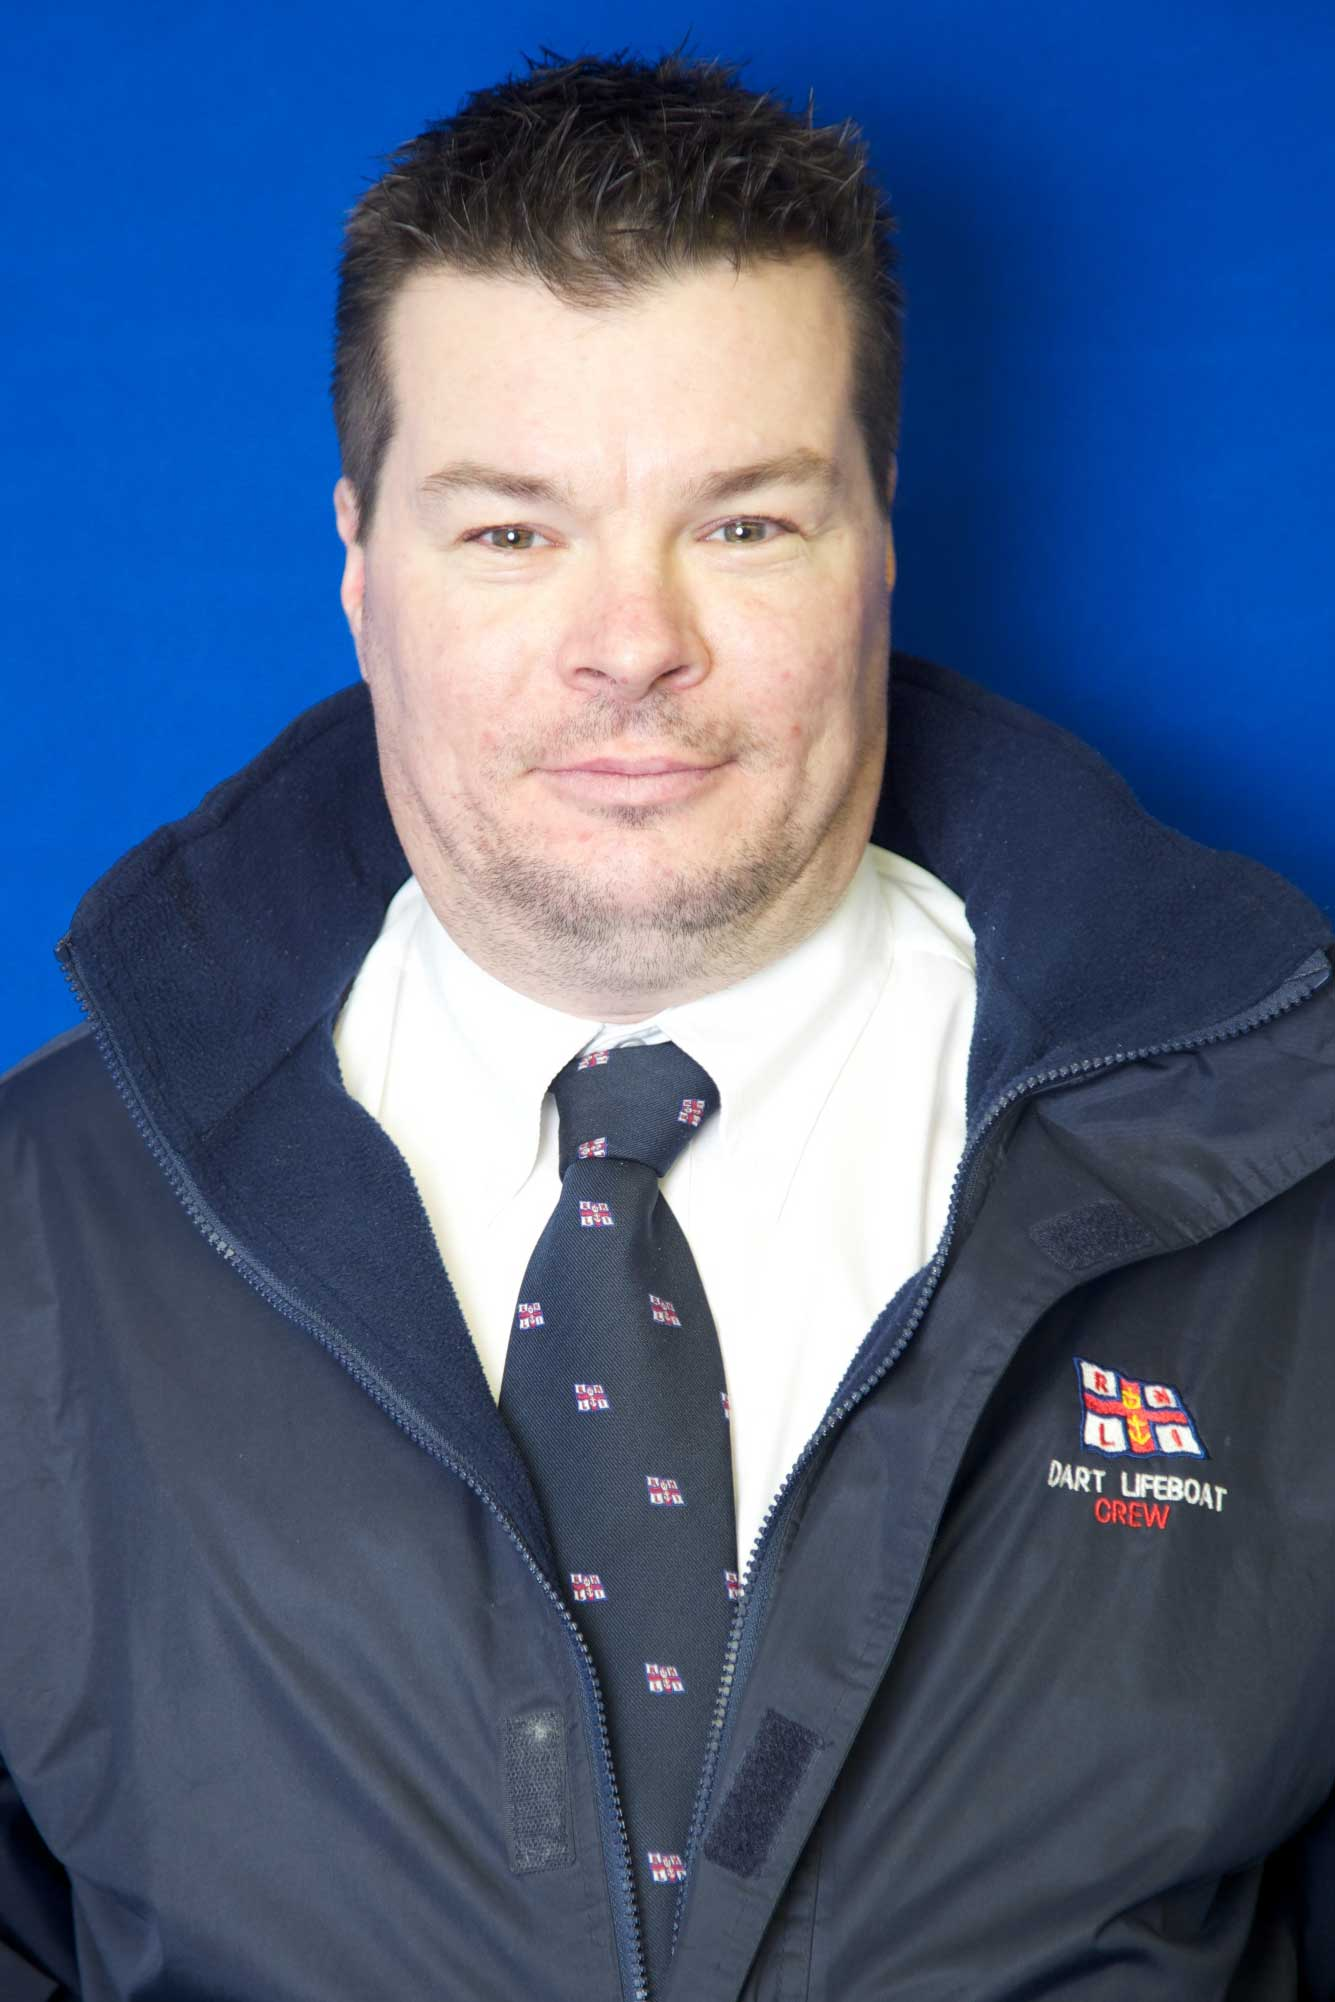 Chris Wallace, Operations Team, RNLI Dart